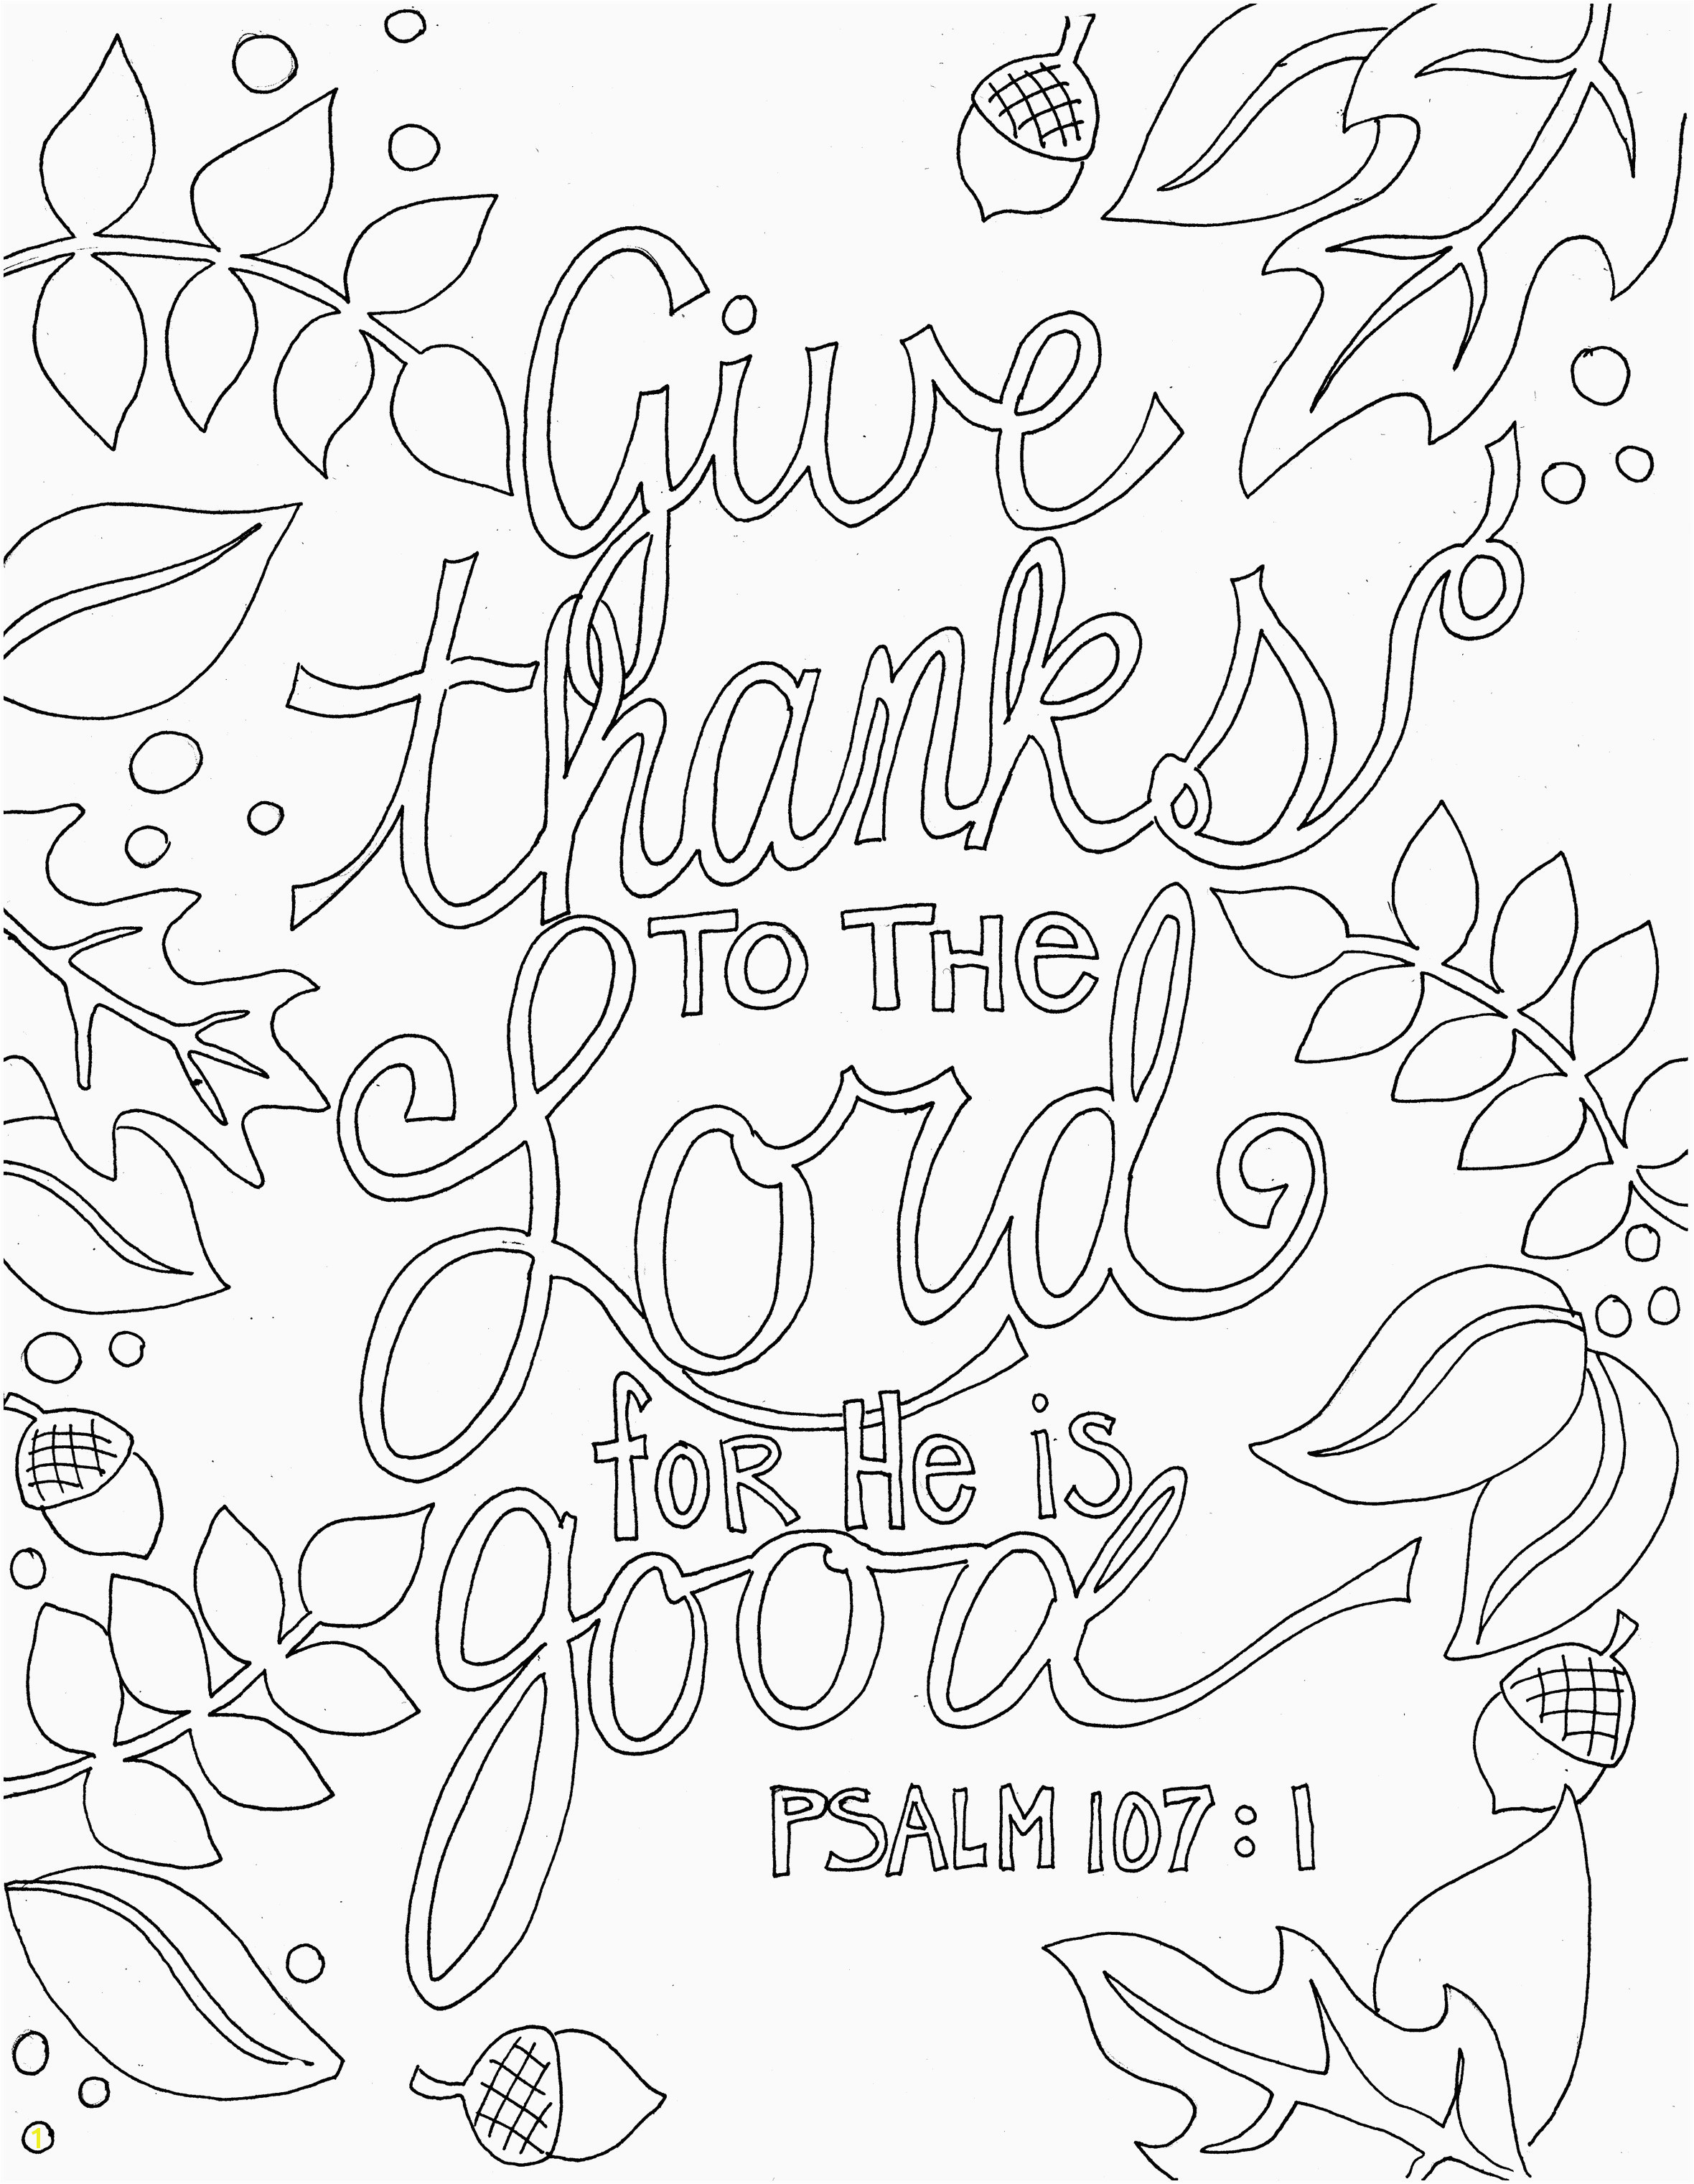 printable bible coloring pages Collection Free Printable Bible Coloring Pages With Scriptures Elegant Best Od